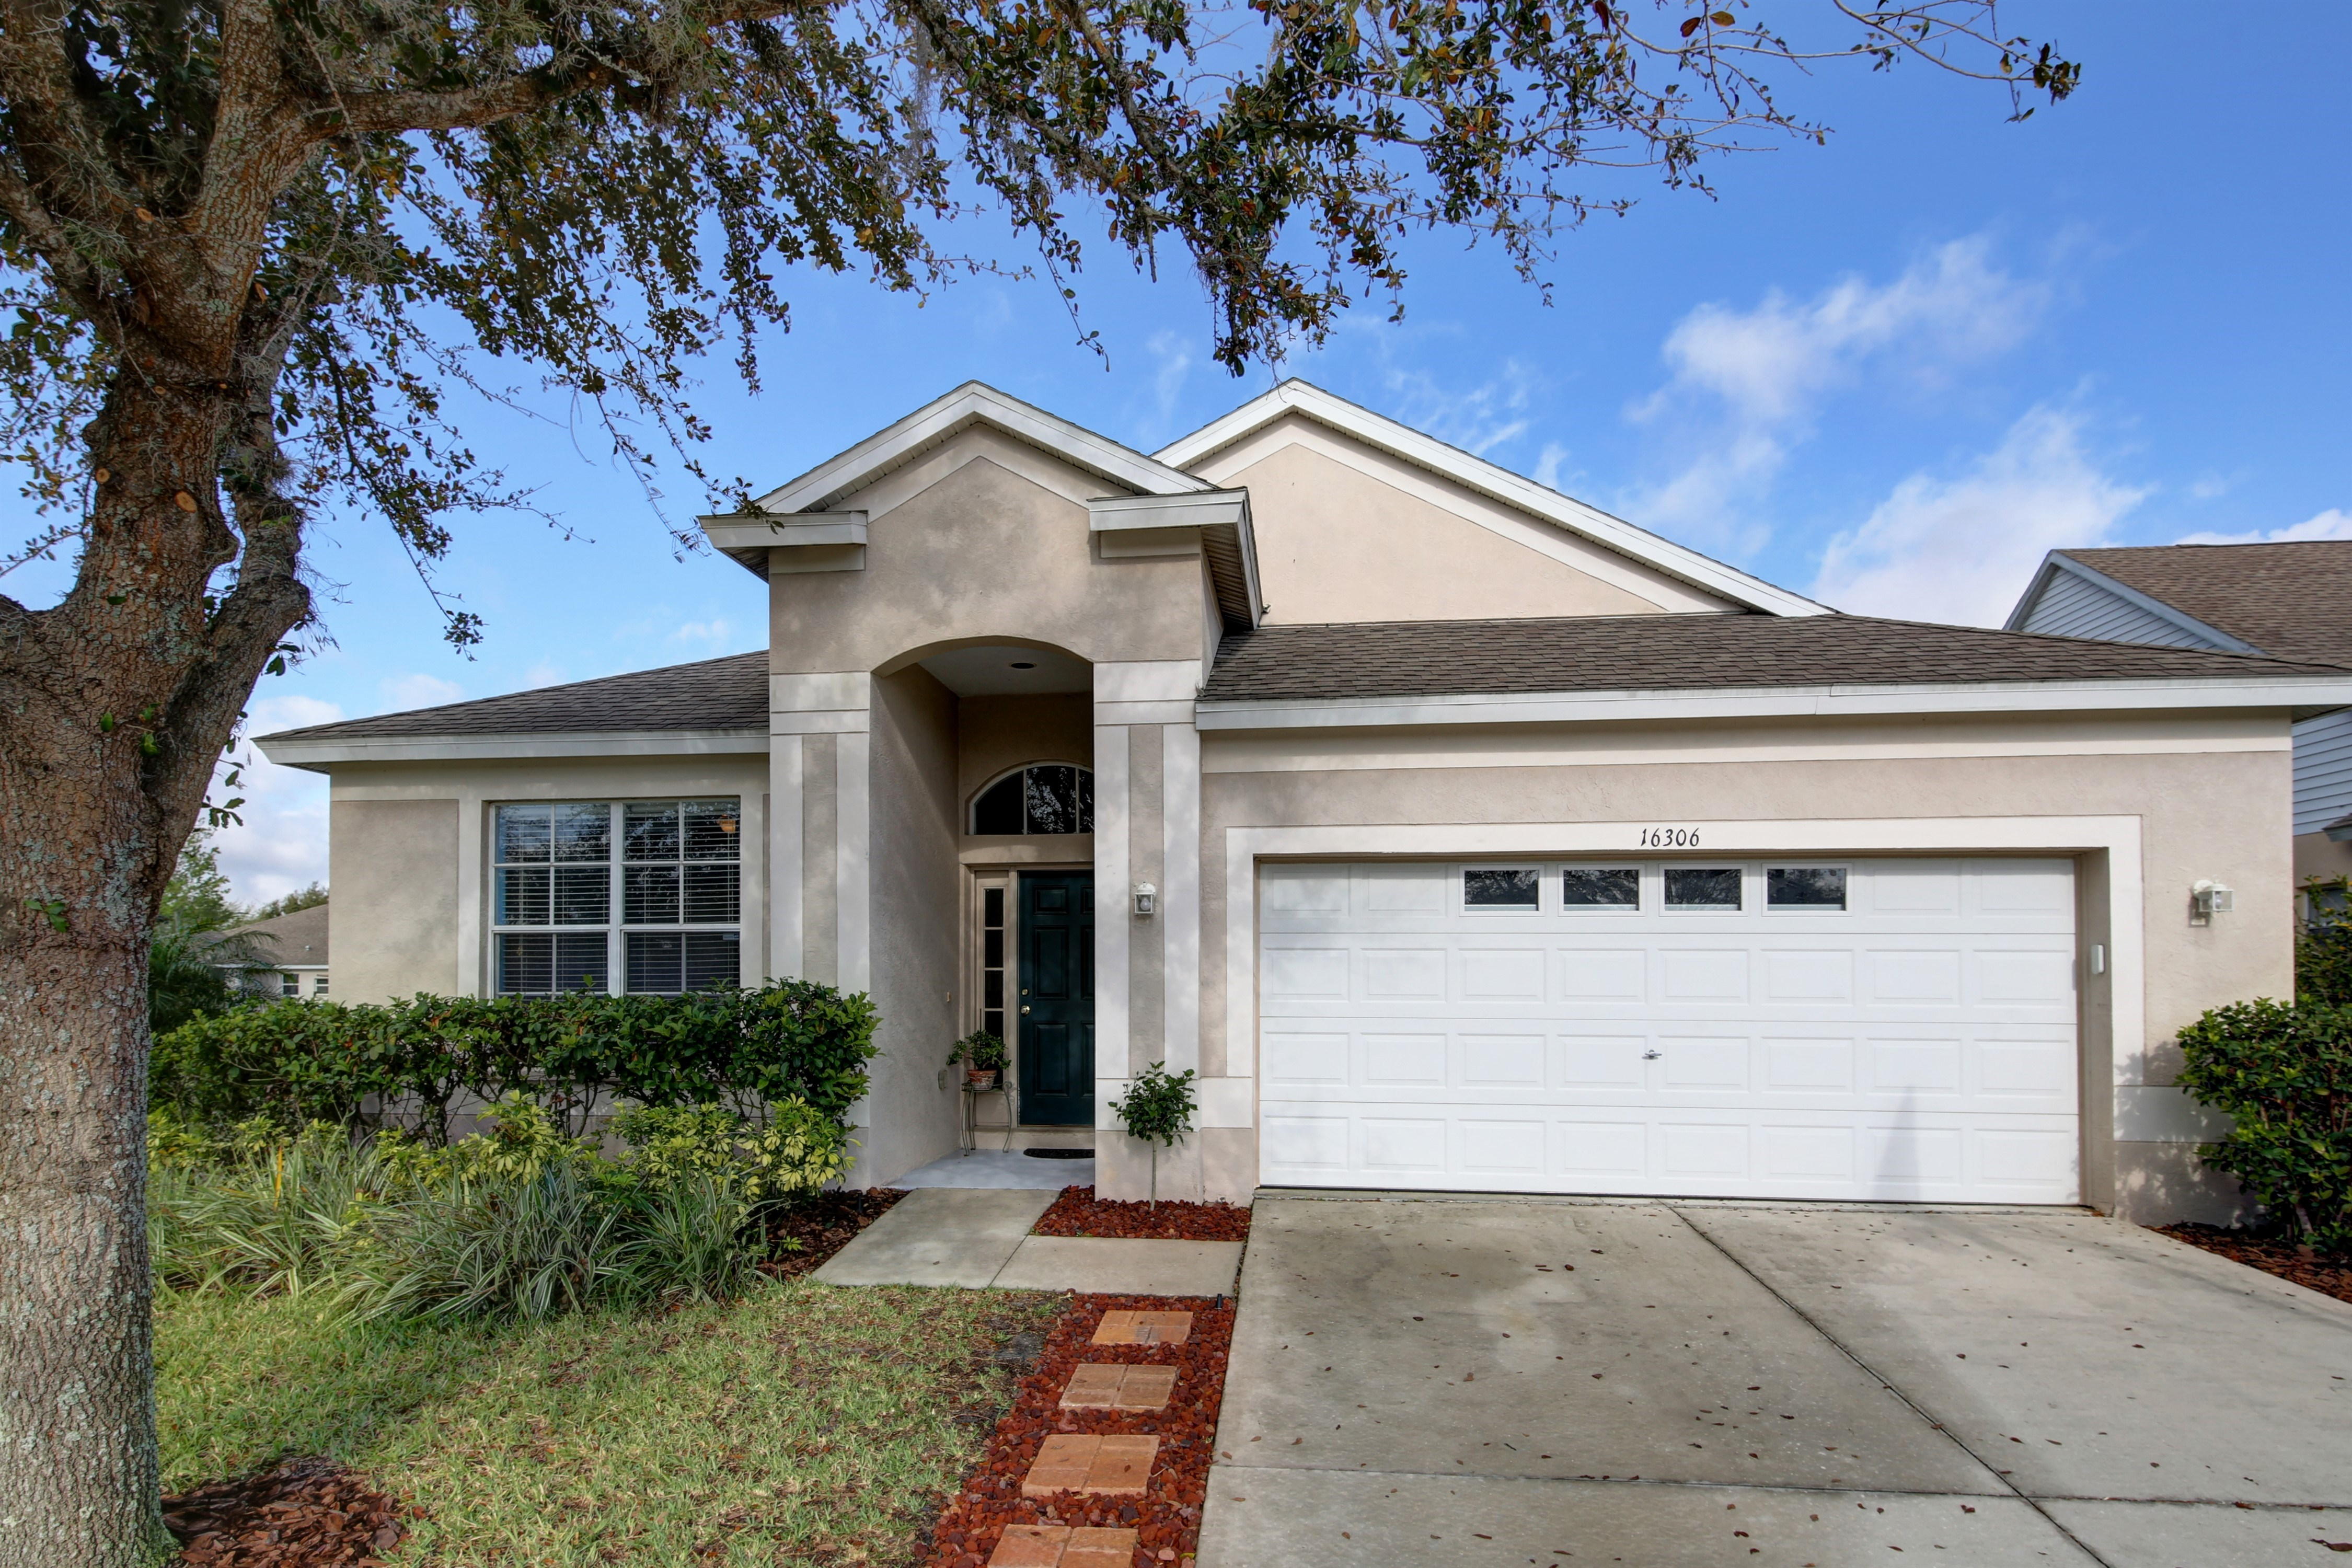 FishHawk Ranch homes for sale in Lithia FL